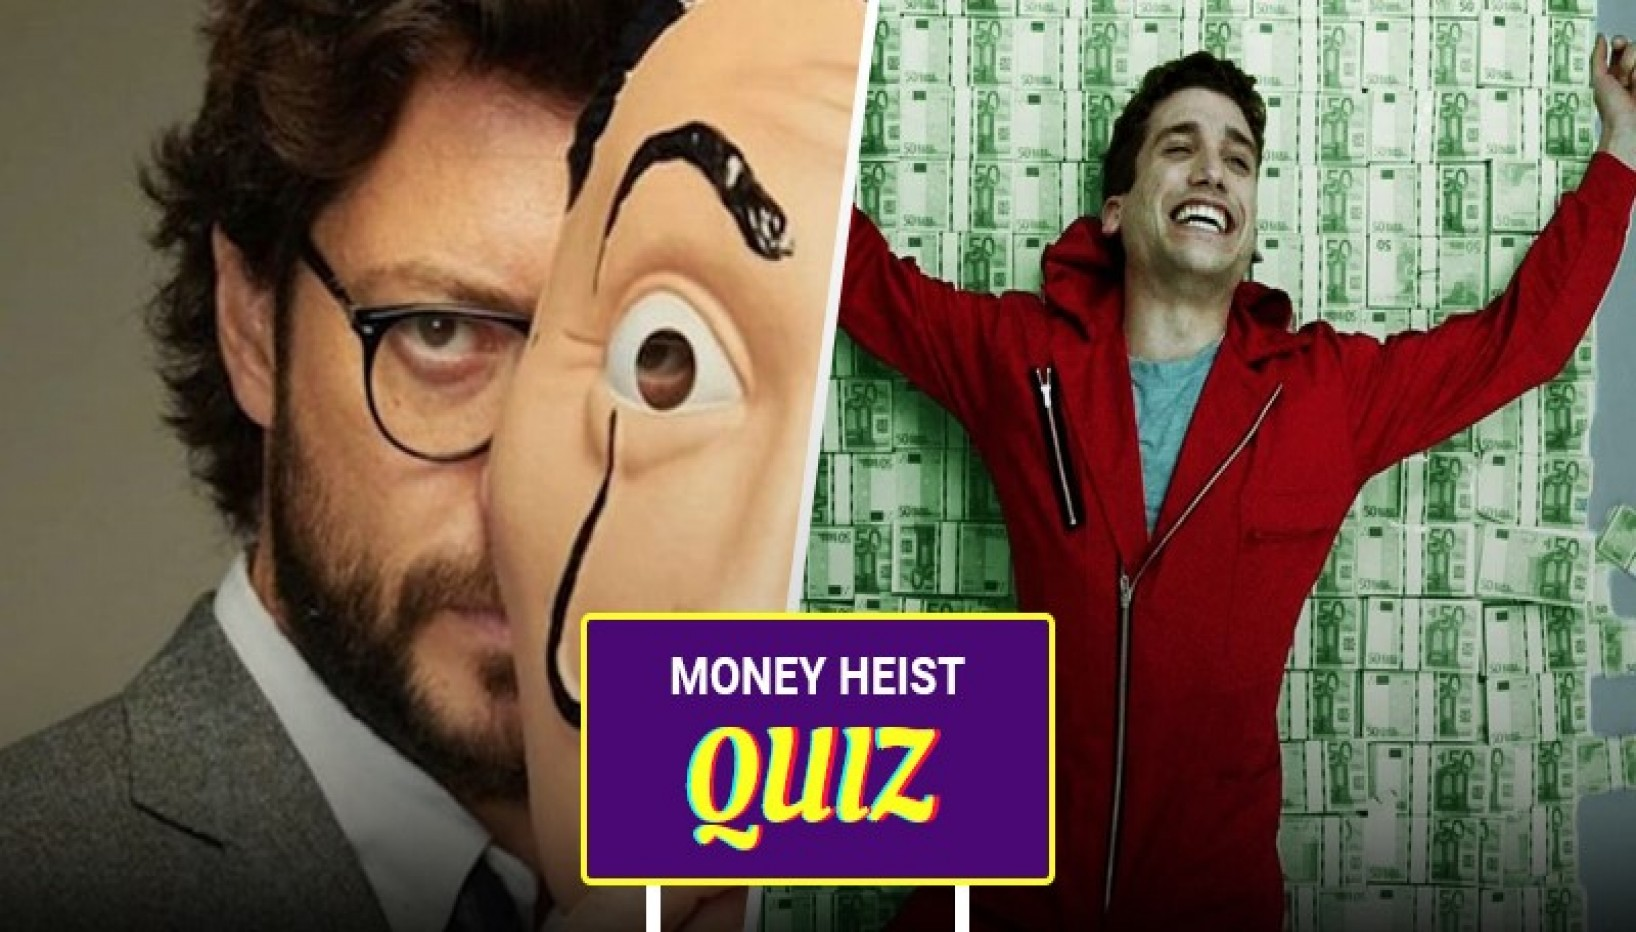 MONEY HEIST QUIZ: Can You Rob This Quiz And Walk Out With Full Score?